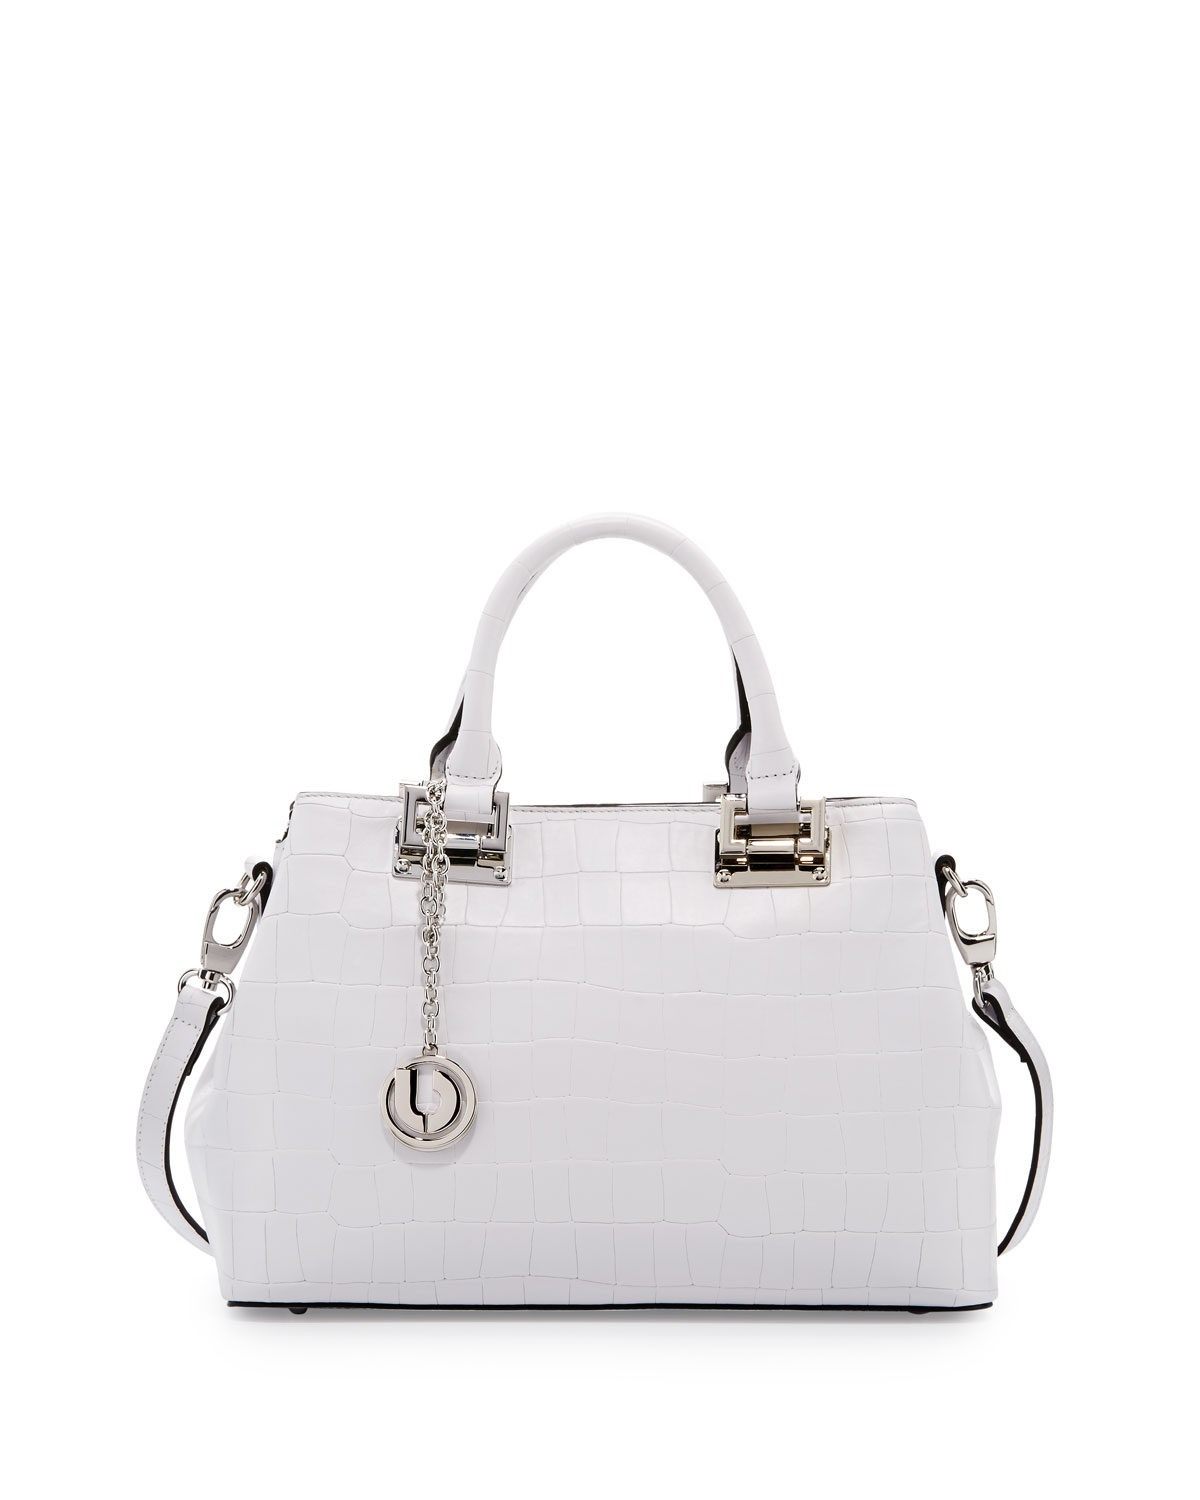 Peggy Alligator-Embossed Leather Satchel Bag, White